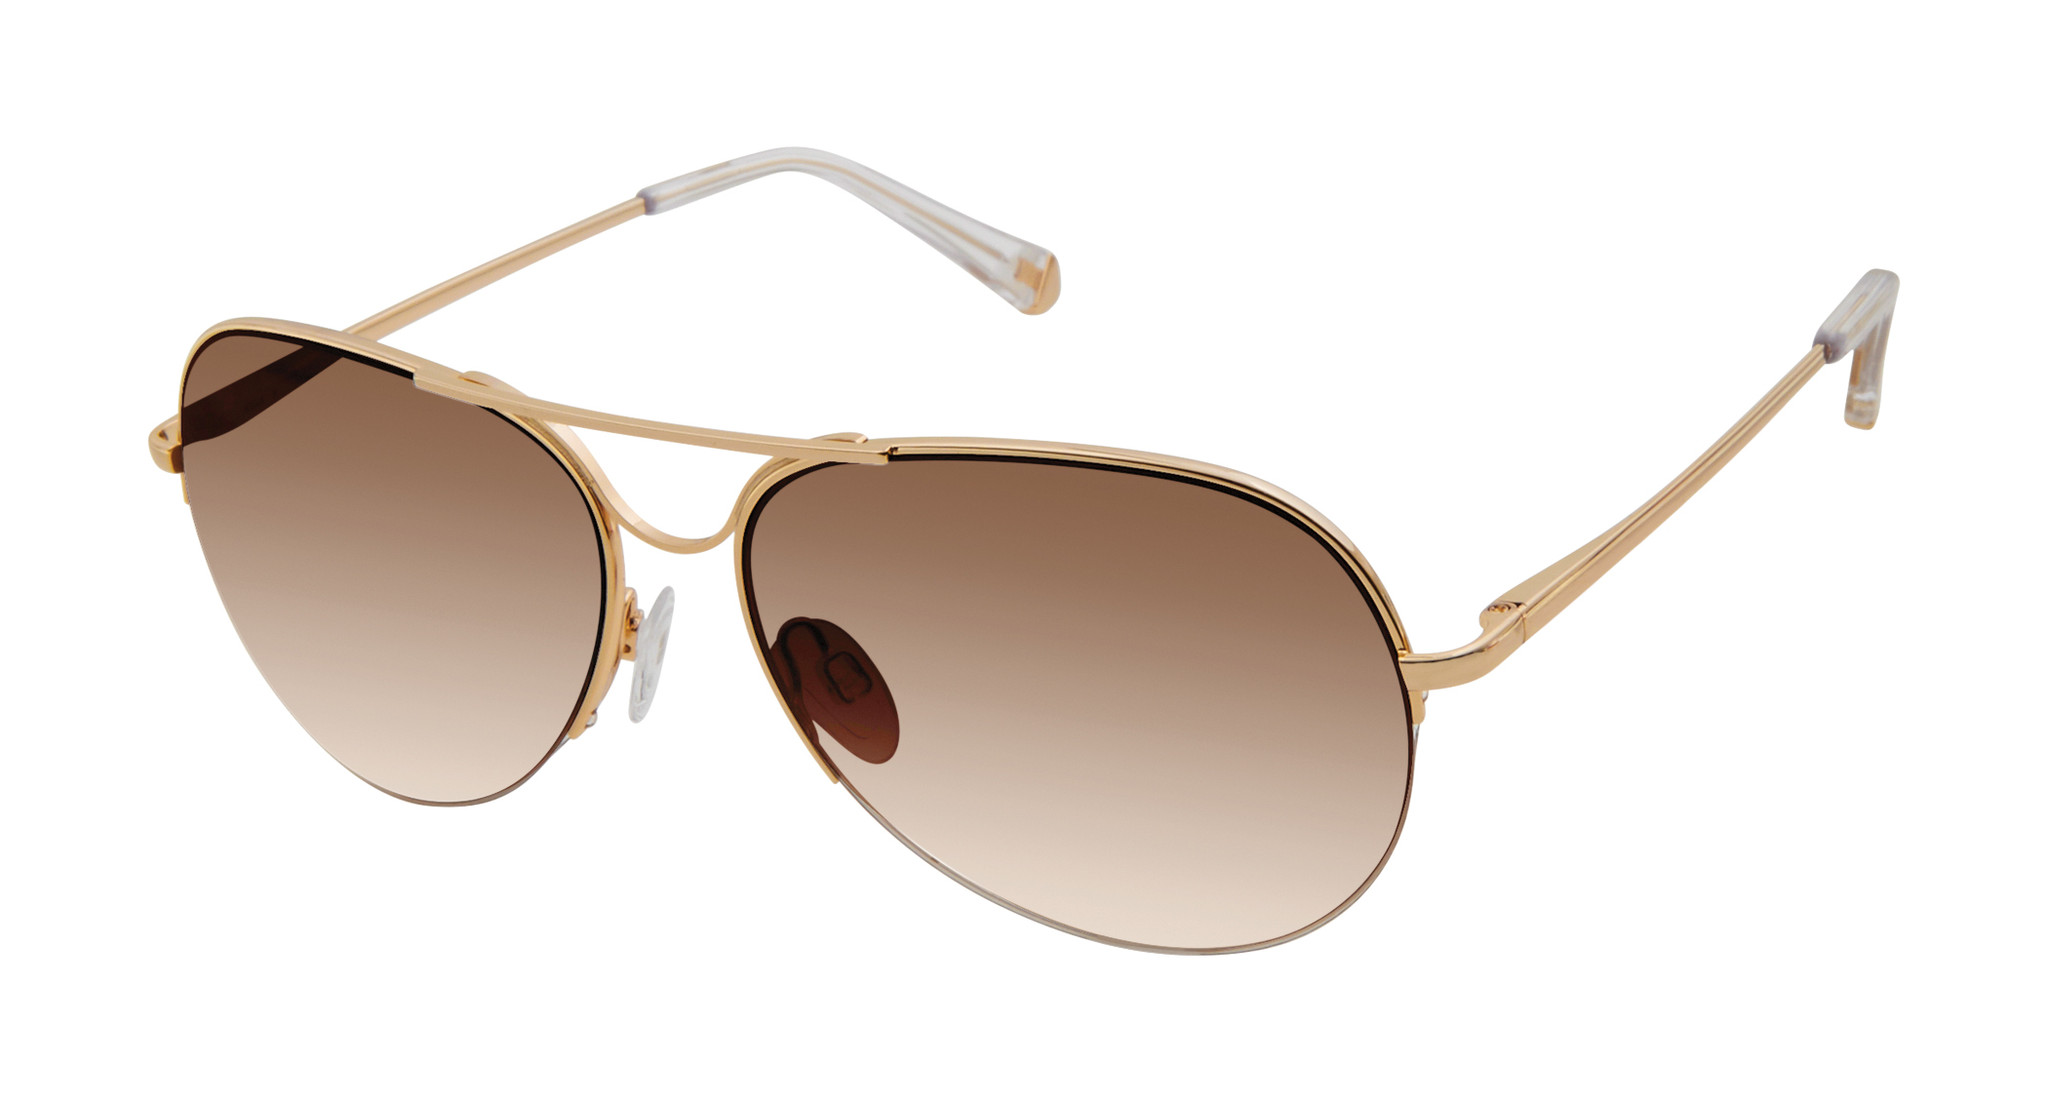 Kate Young for Tura, Alicia frame, Kate Young Suns, Kate Young Sunglasses, Kate Young Eyewear